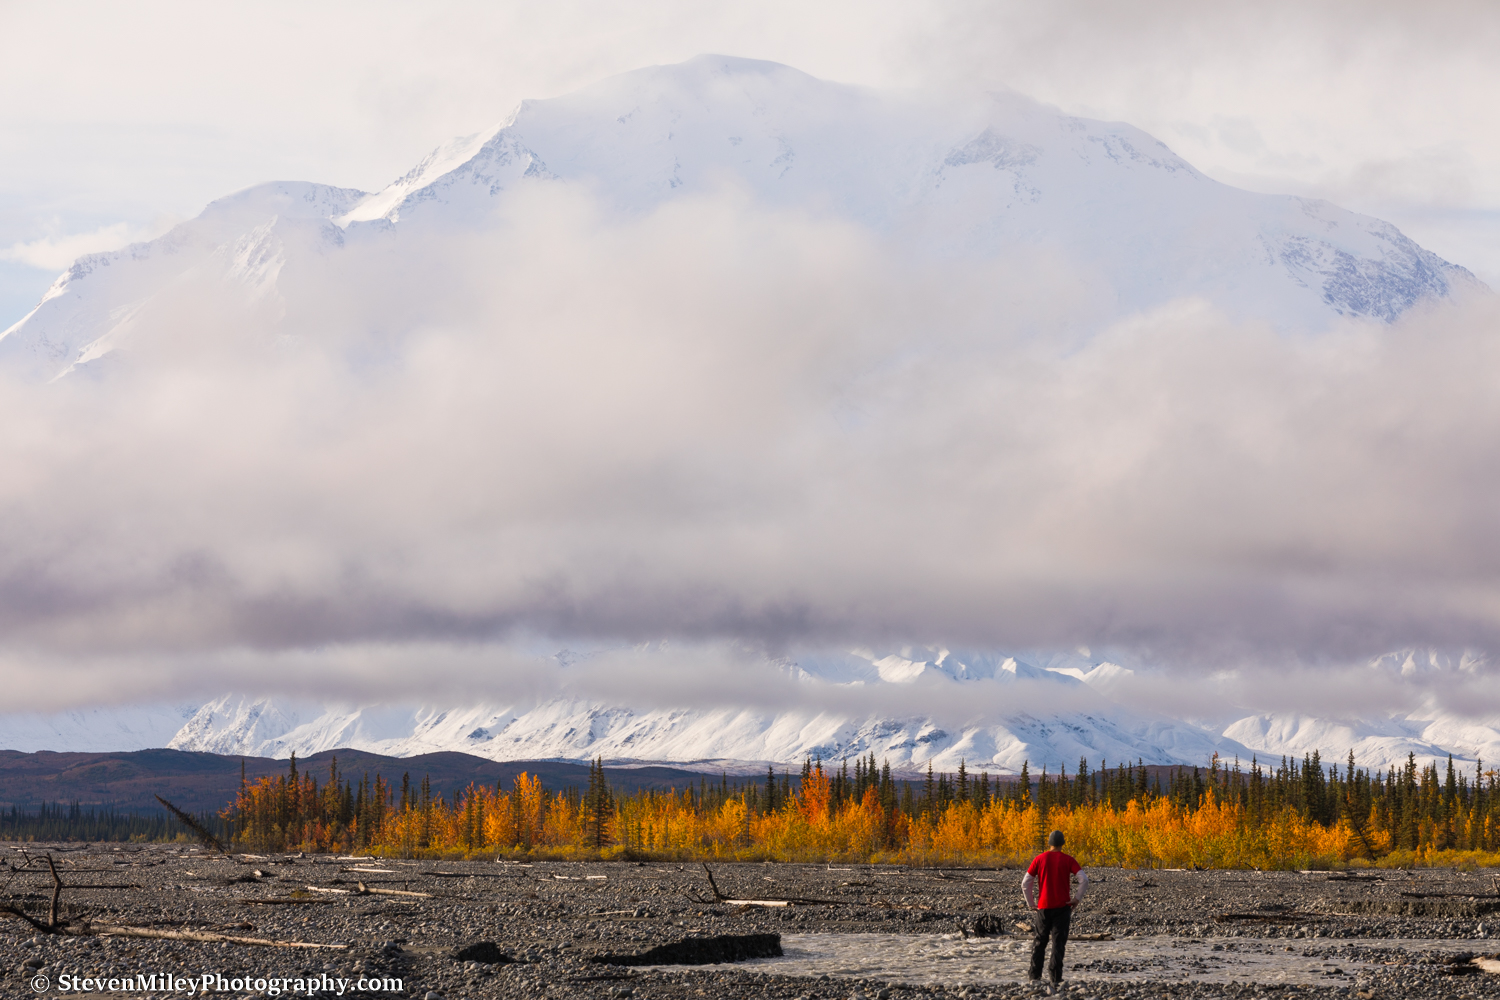 Denali sporting fresh snow on a brisk fall morning, viewed from my campsite at the confluence of the Muddy River and McKinley River.